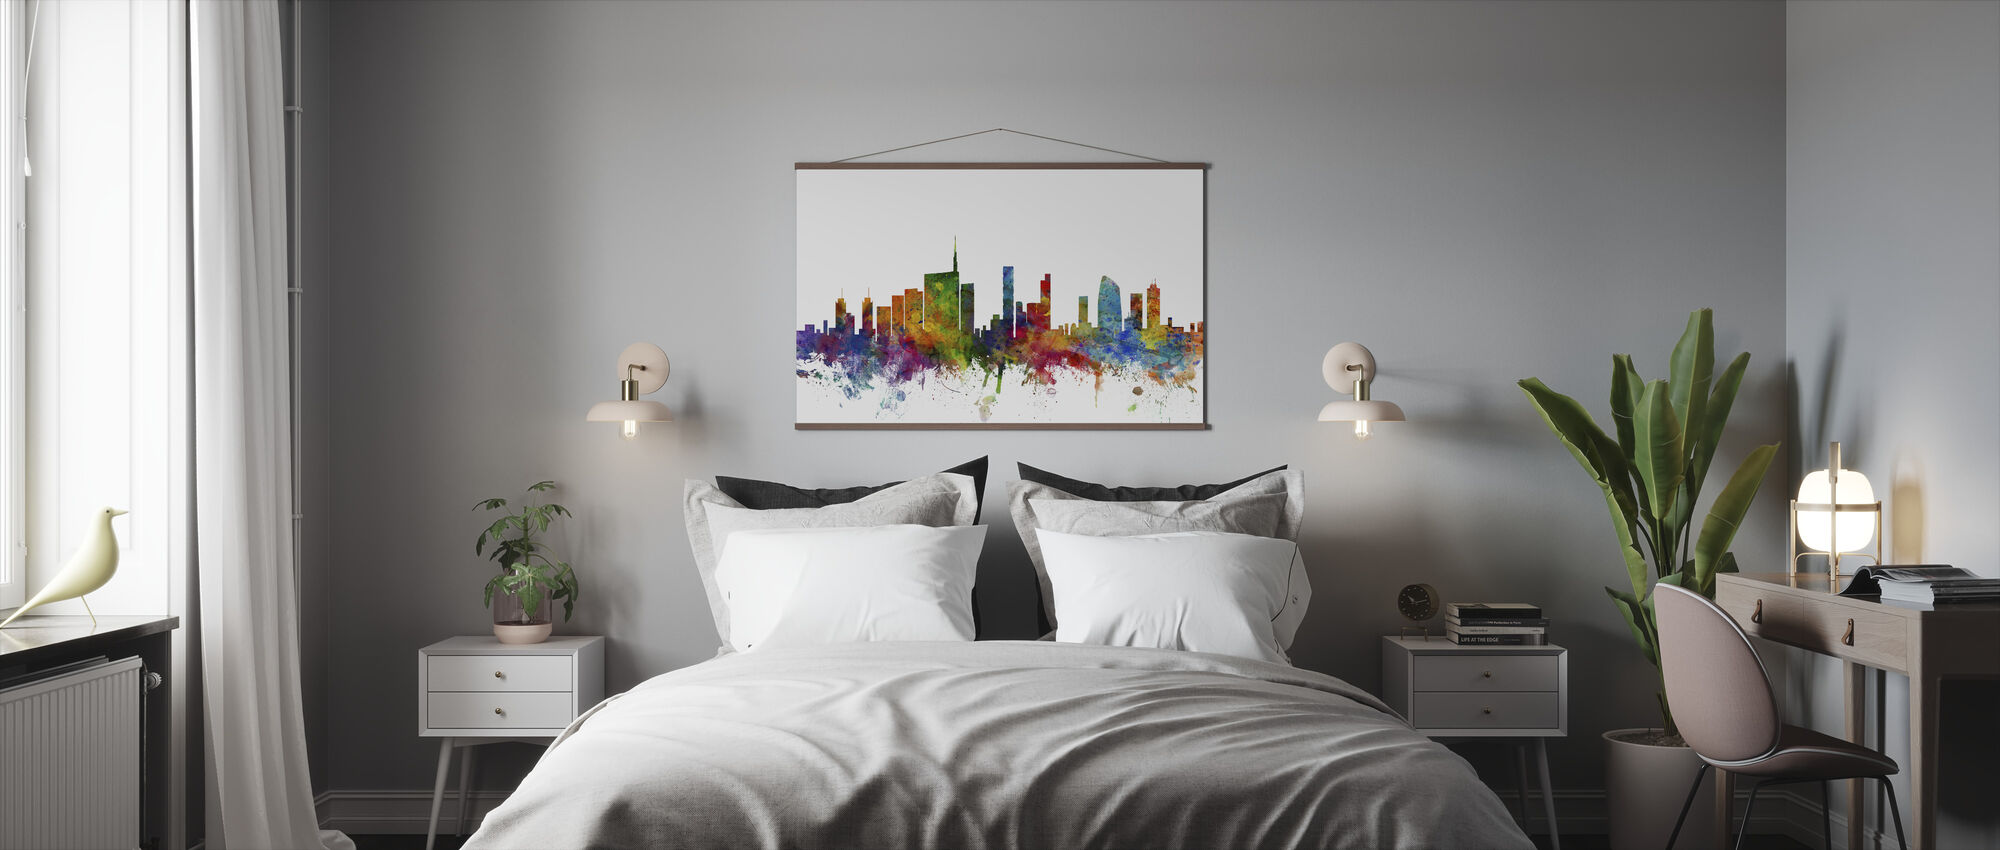 Milan Skyline - Poster - Bedroom